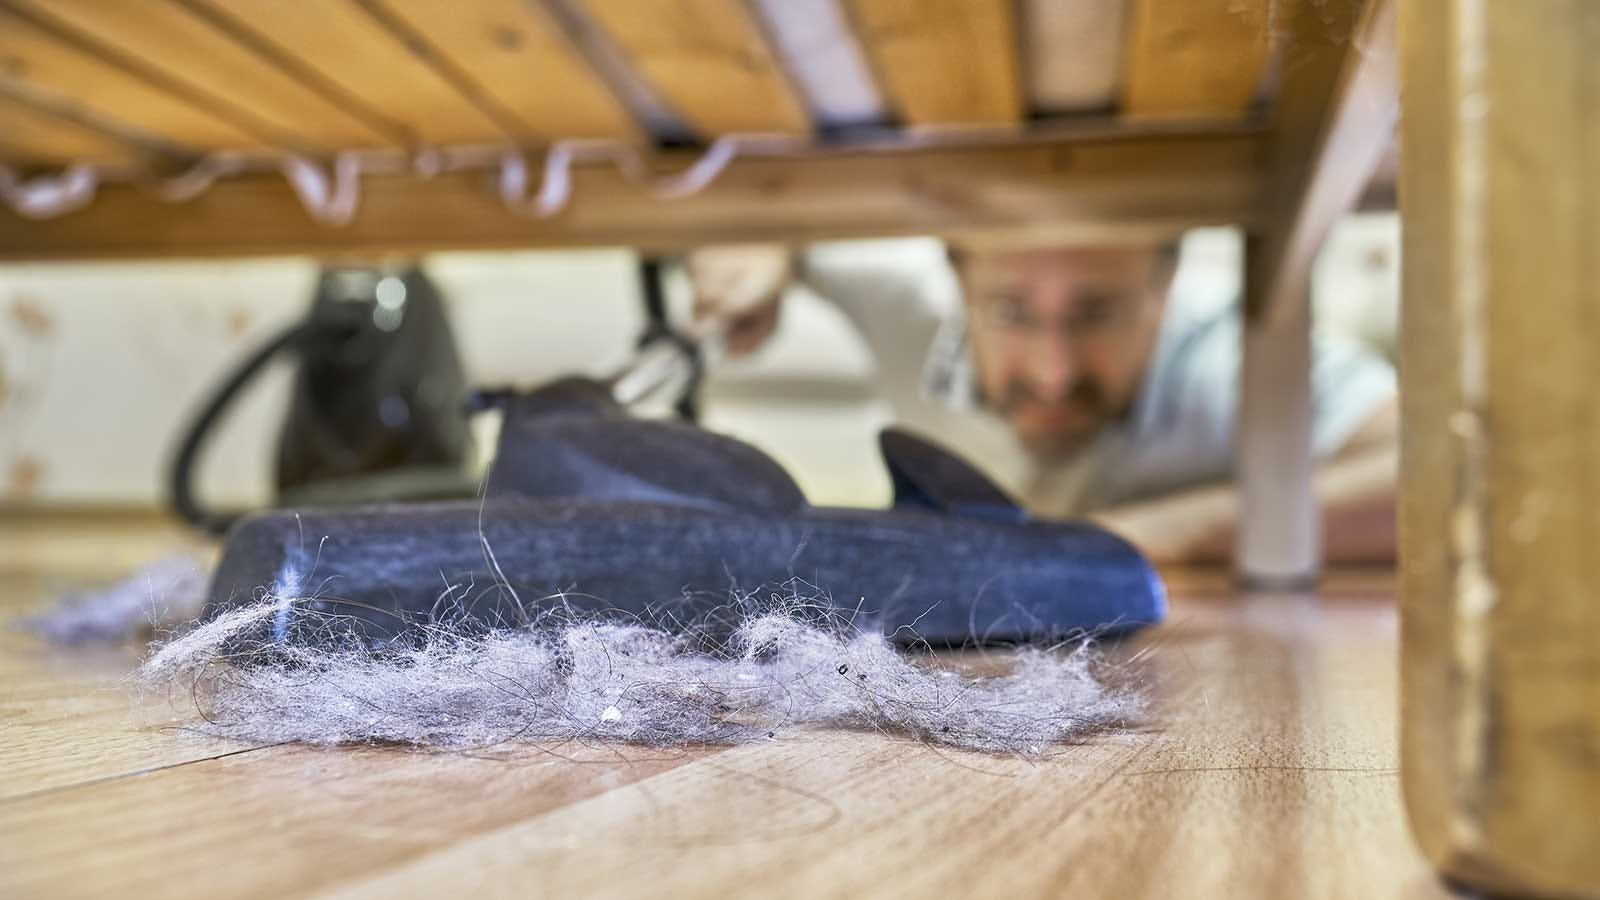 Man vacuuming huge dust bunnies from under his bed.